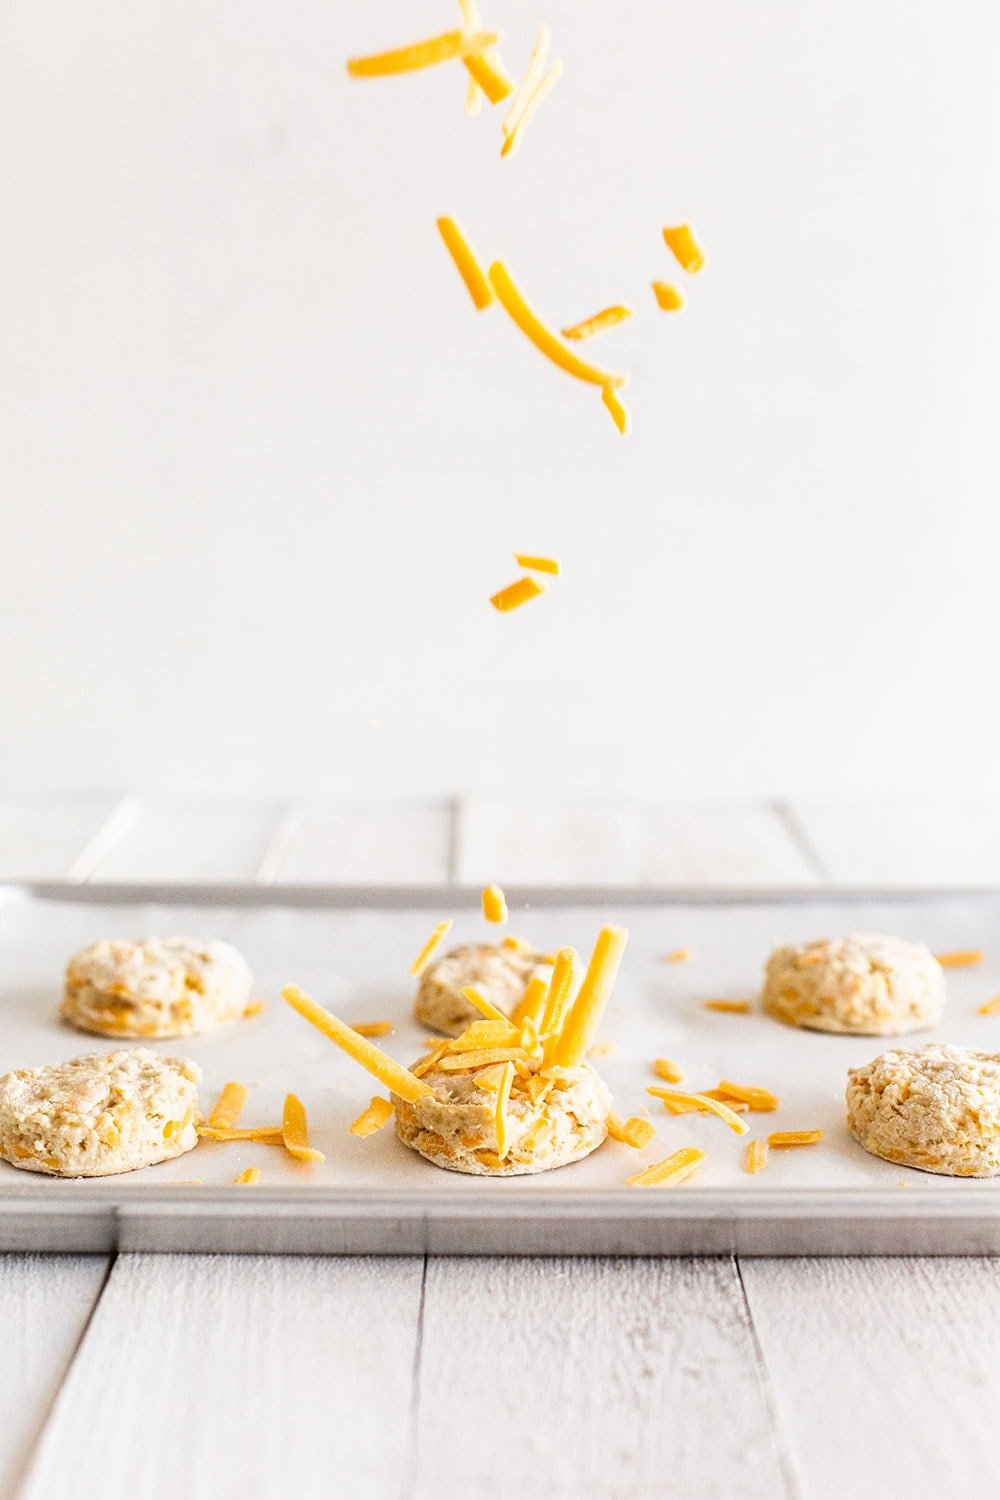 Sprinkling cheddar cheese on biscuit rounds before baking